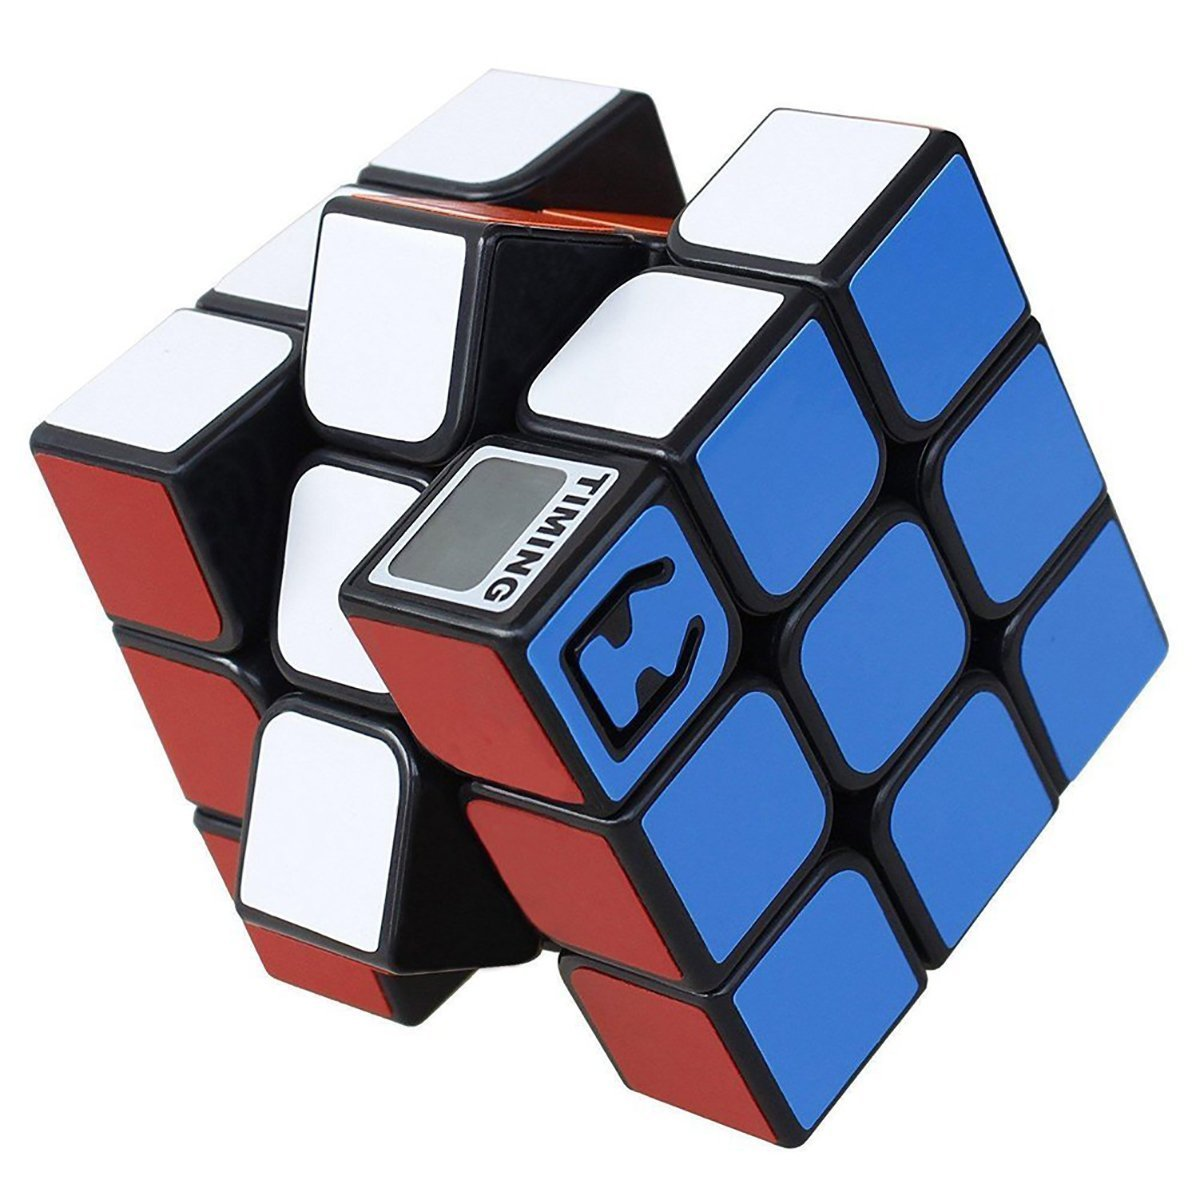 3x3x3 Magic Cube with Timer Smooth Speed Cube Black Body with Colour Stickers Puzzle Toy for Adults and Children